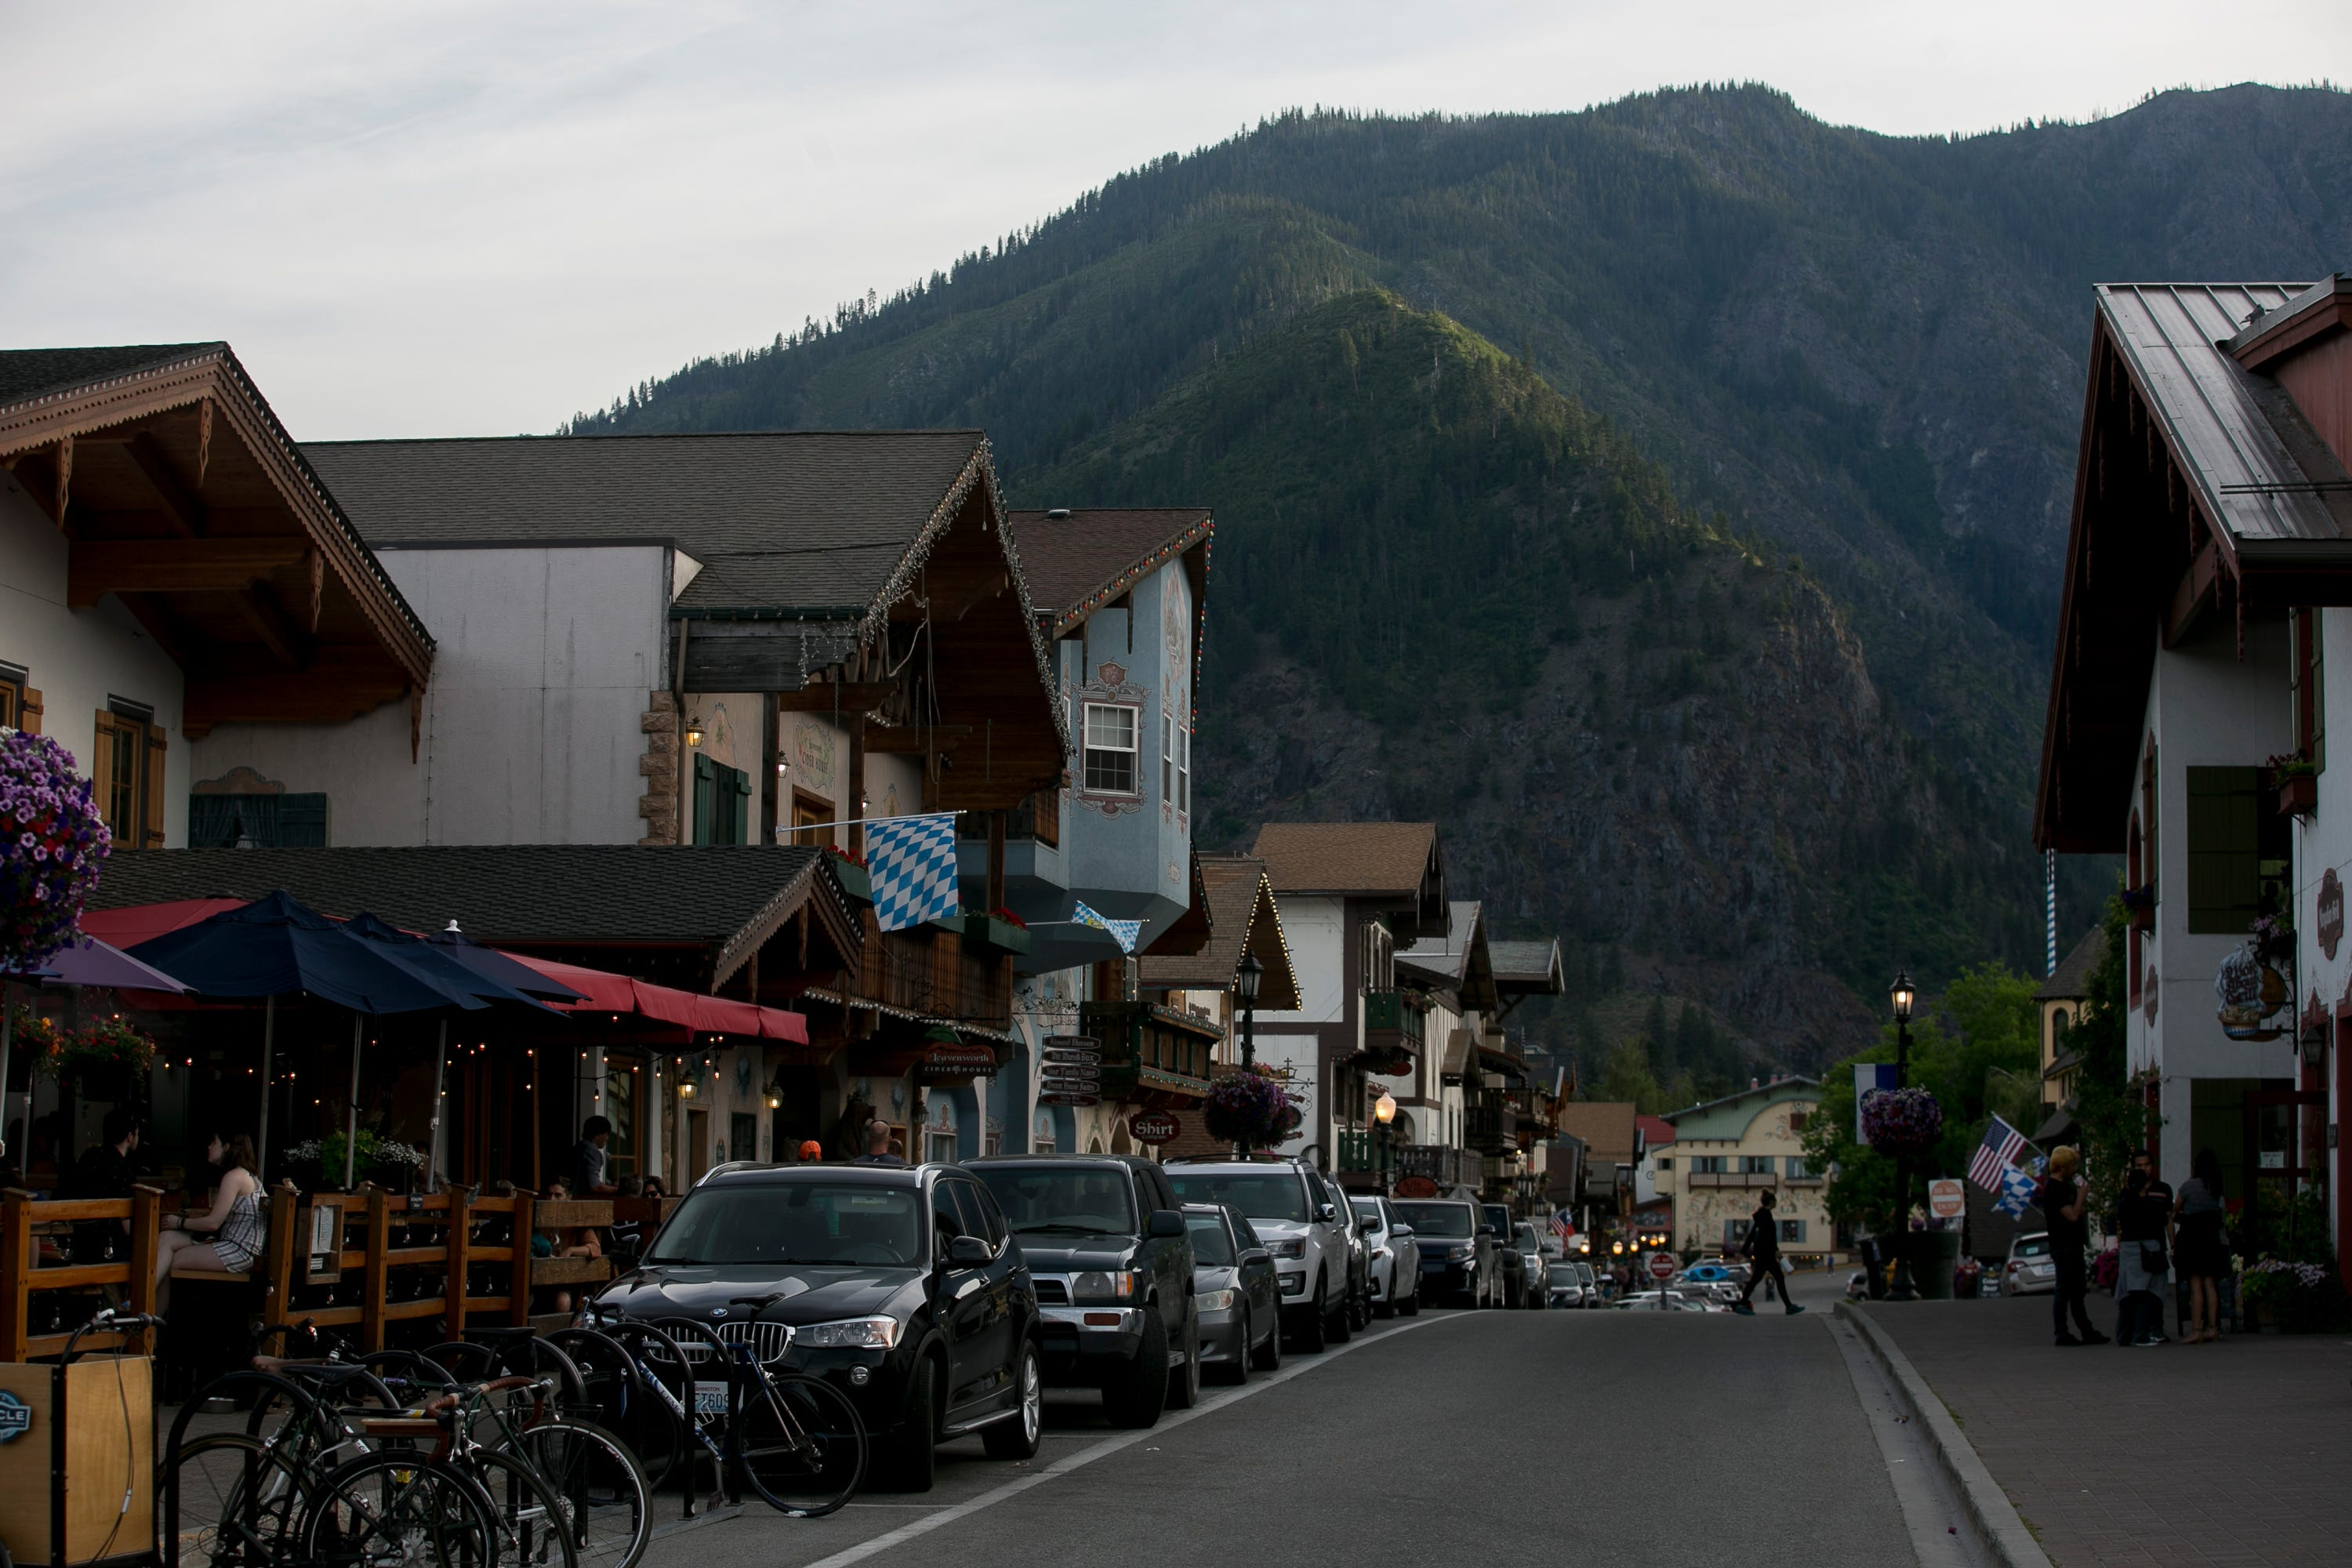 Tourists enjoy the downtown Bavarian themed business center in Leavenworth, Washington, on June 17, 2019.